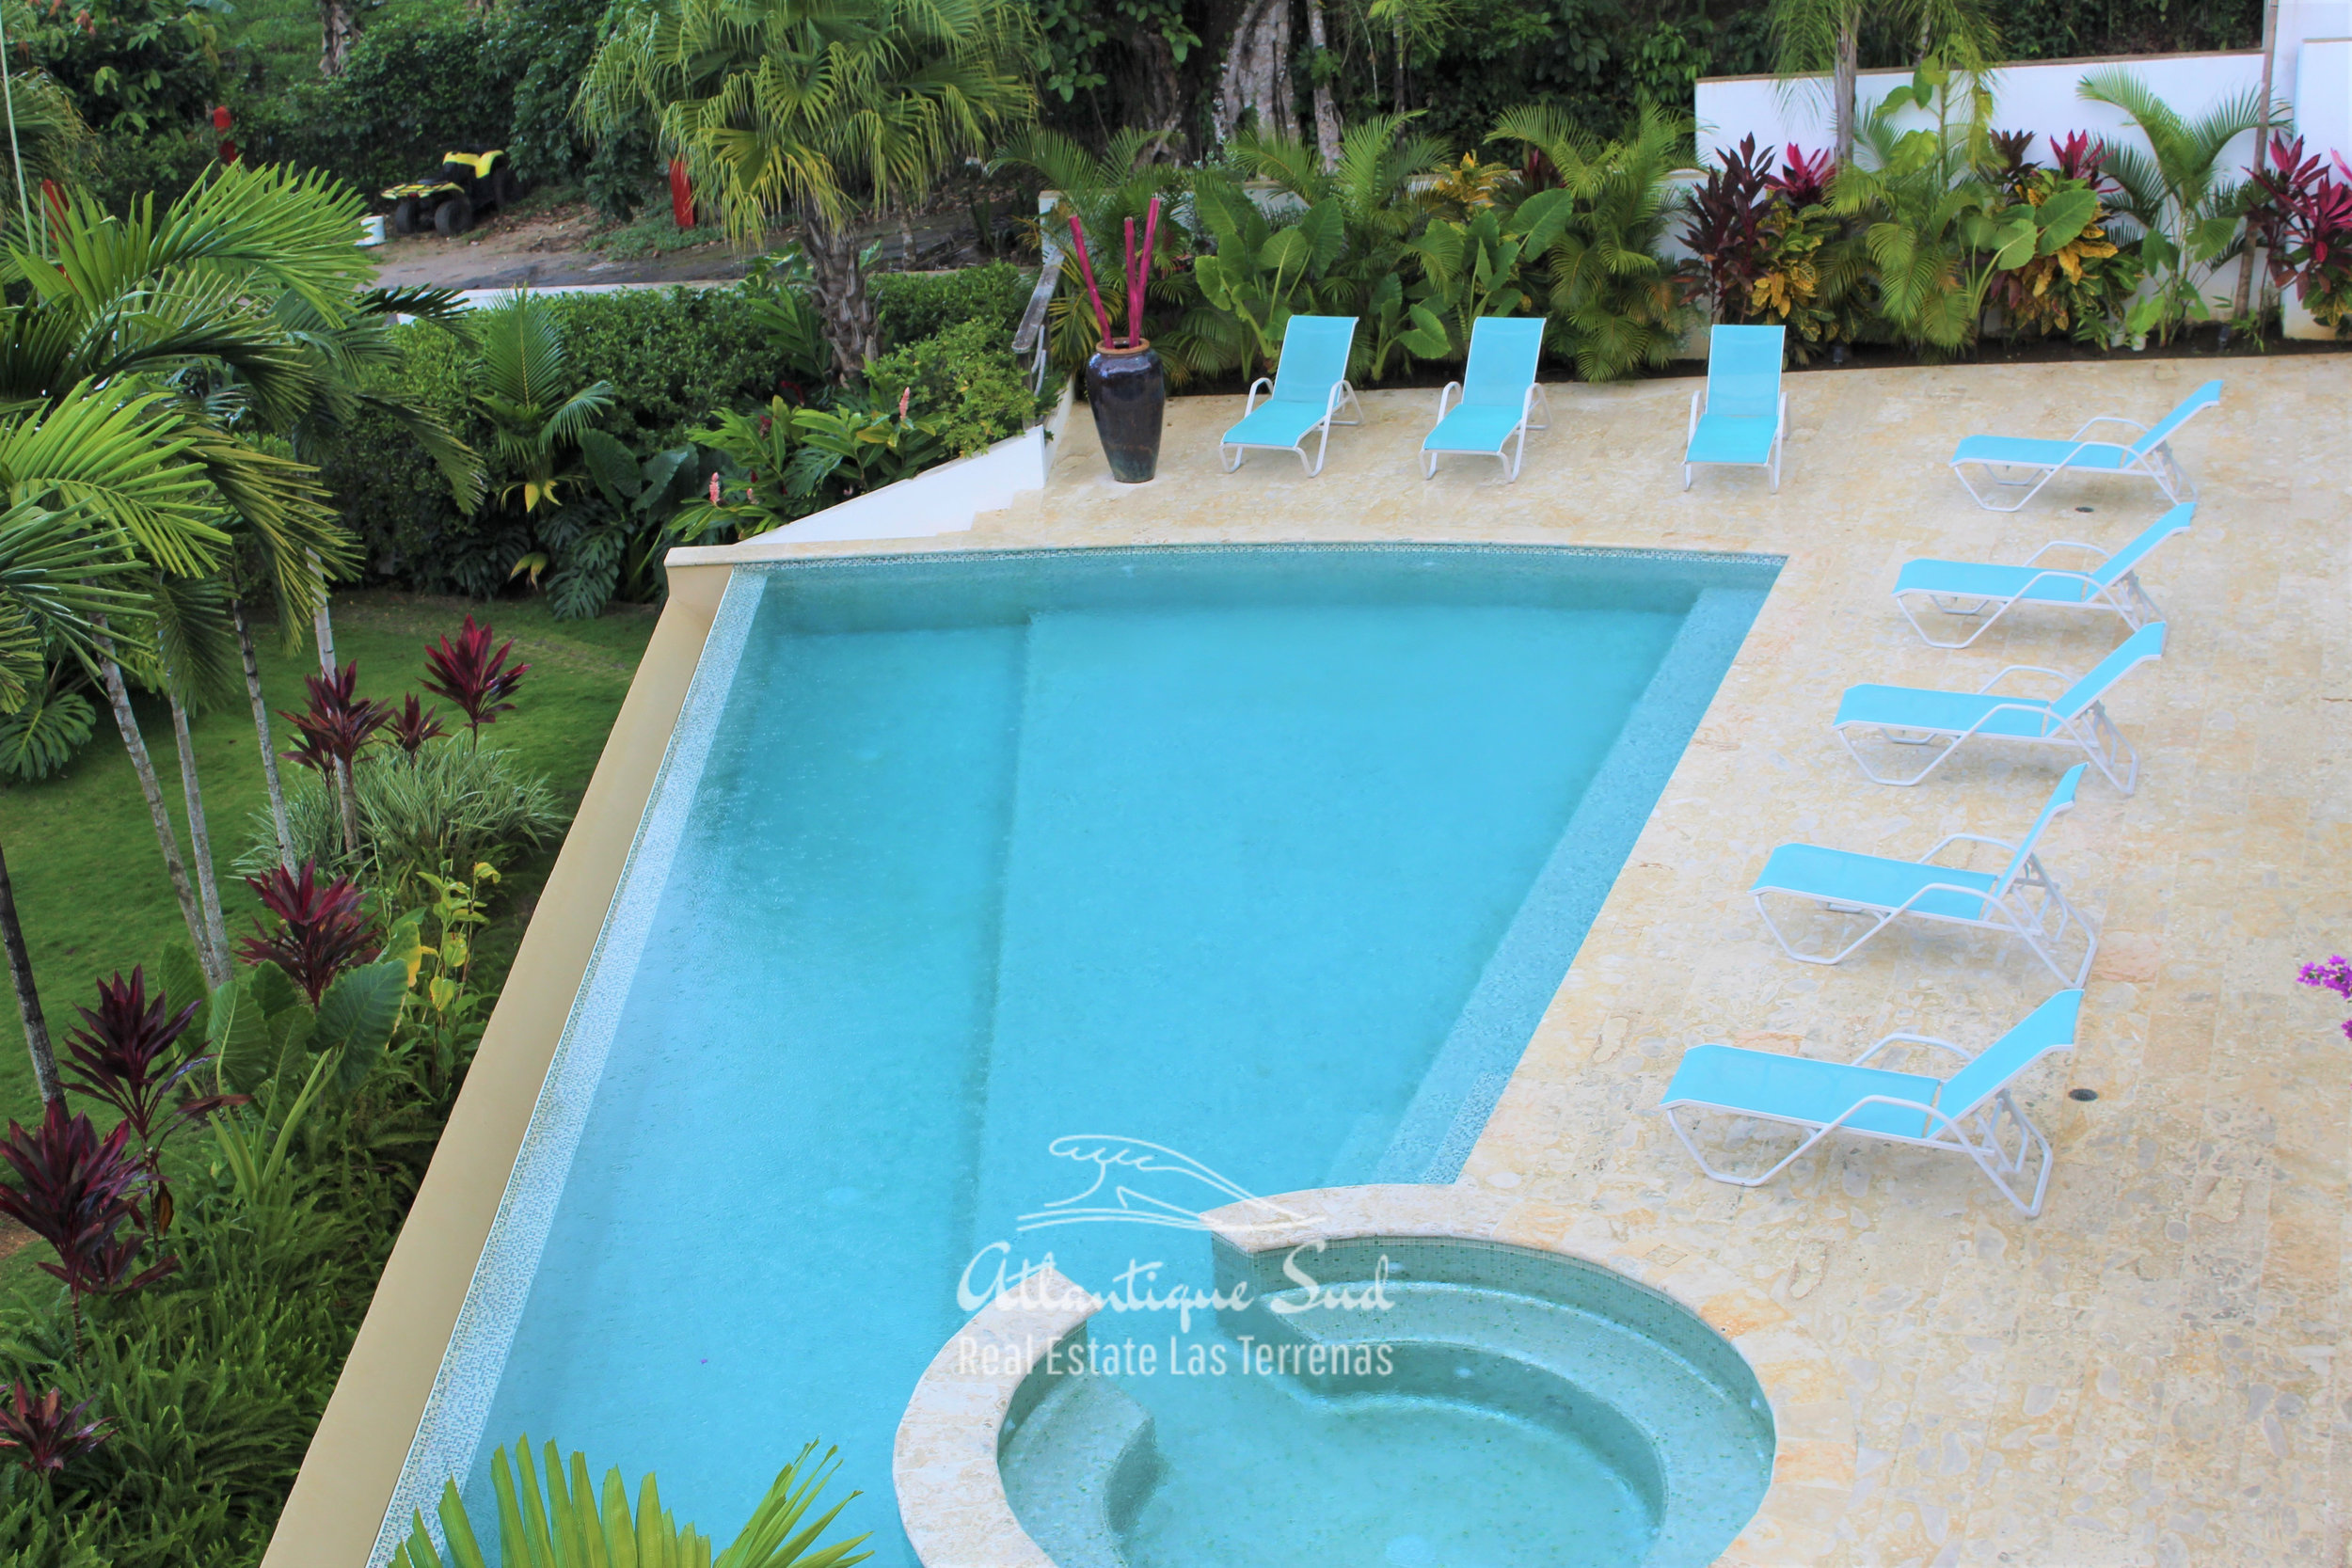 Cozy-1-bedroom-apartment-in-gated-community-close-to-the-center-of-lasterrenas11.jpg